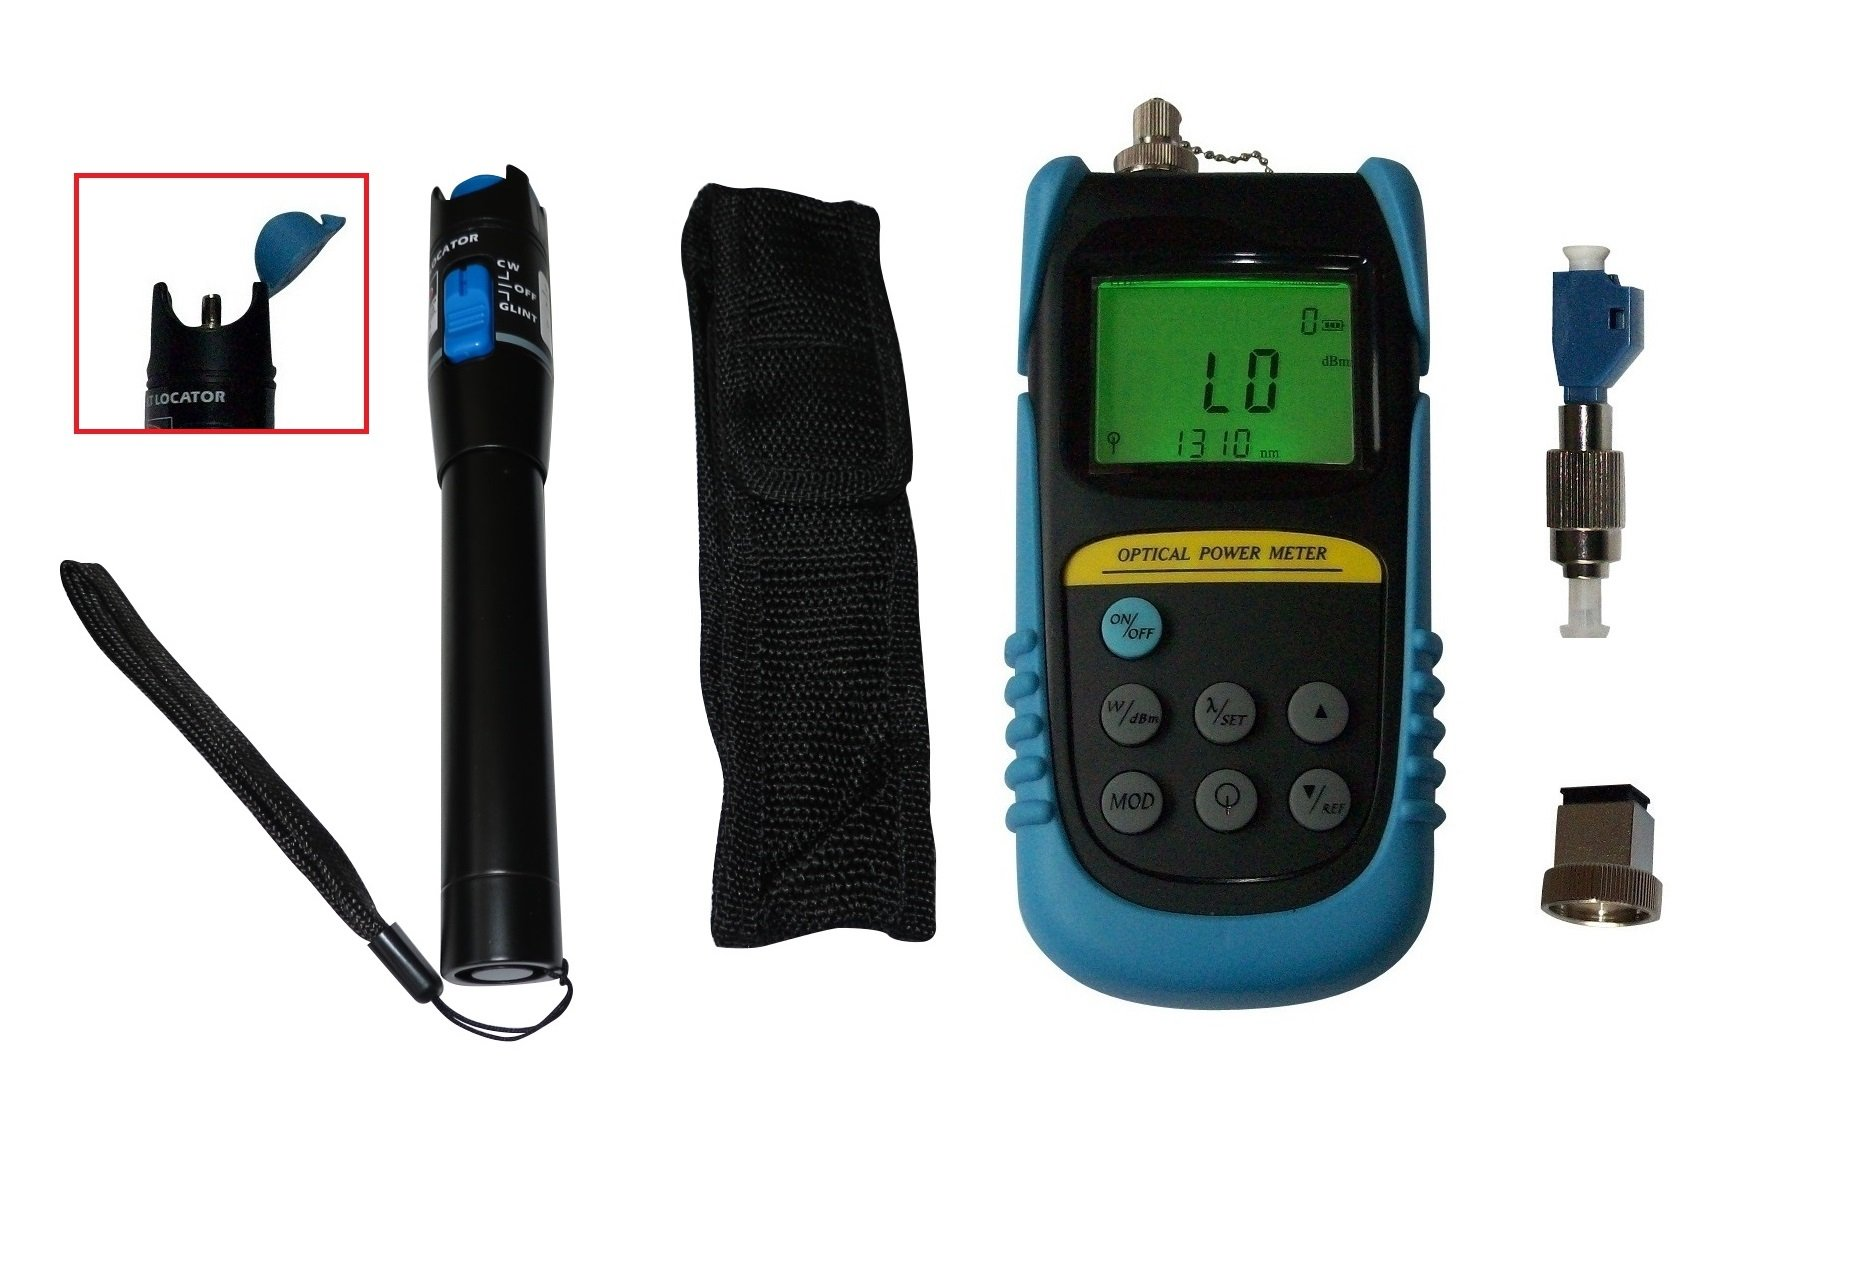 Optical Power Meter +26 to -50dBm W/ 20mW Visual Fault Locator Fiber Optic Cable Tester/ FC Male-LC Female Adapter